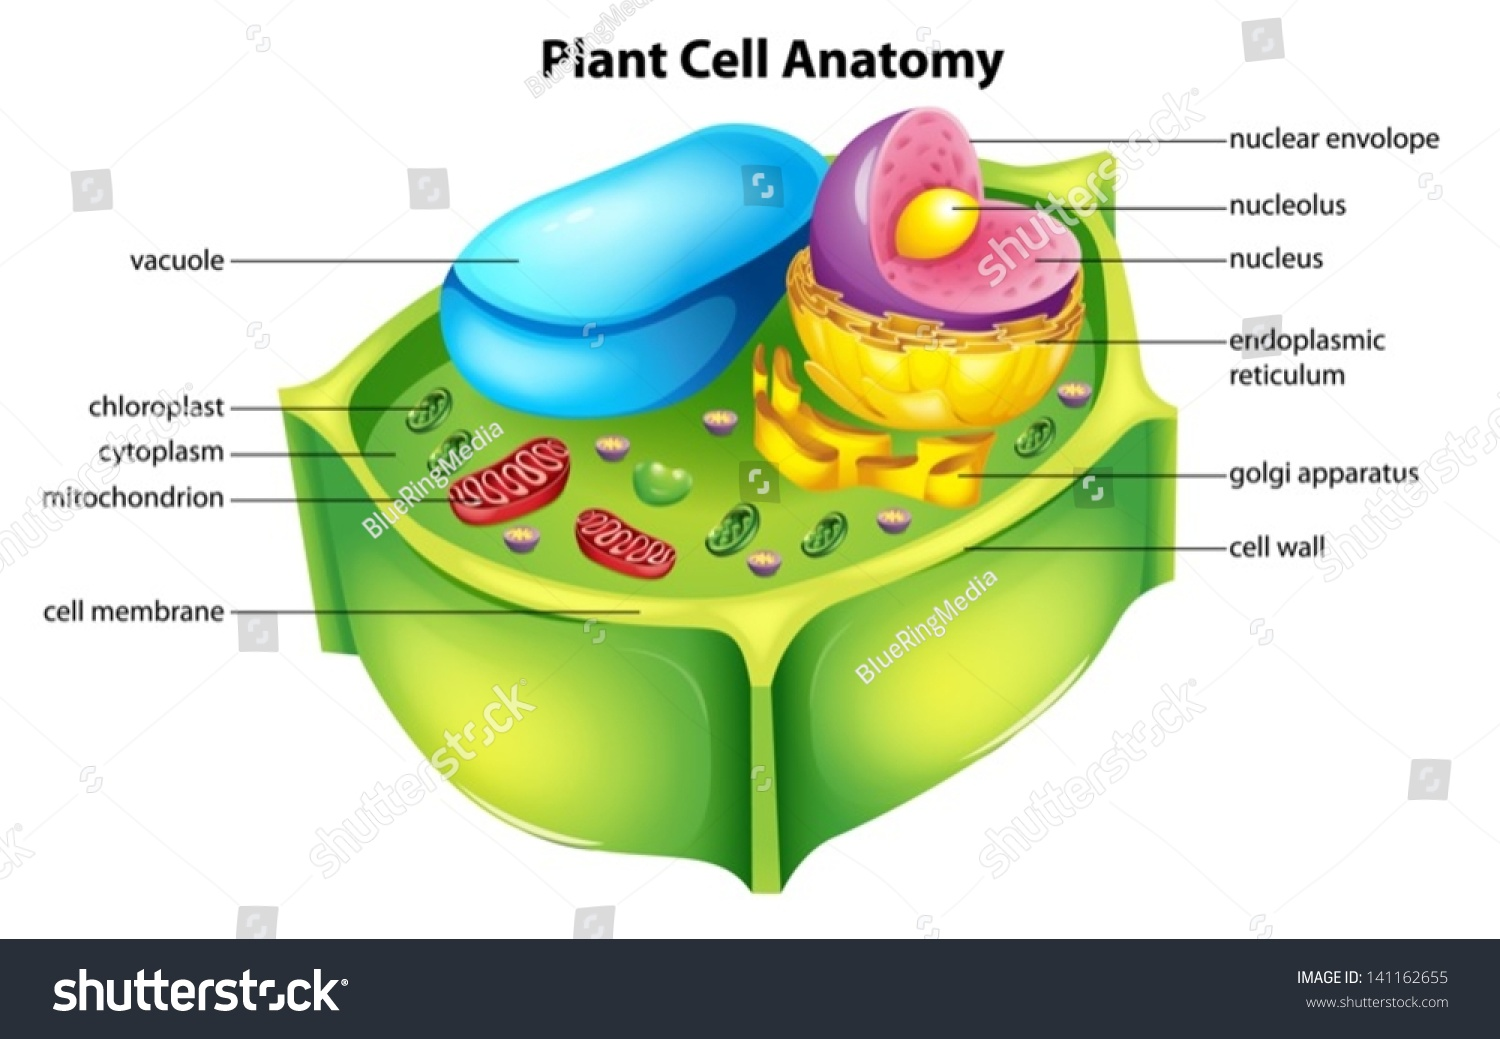 Illustration Showing Plant Cell Anatomy Stock Vector Shutterstock